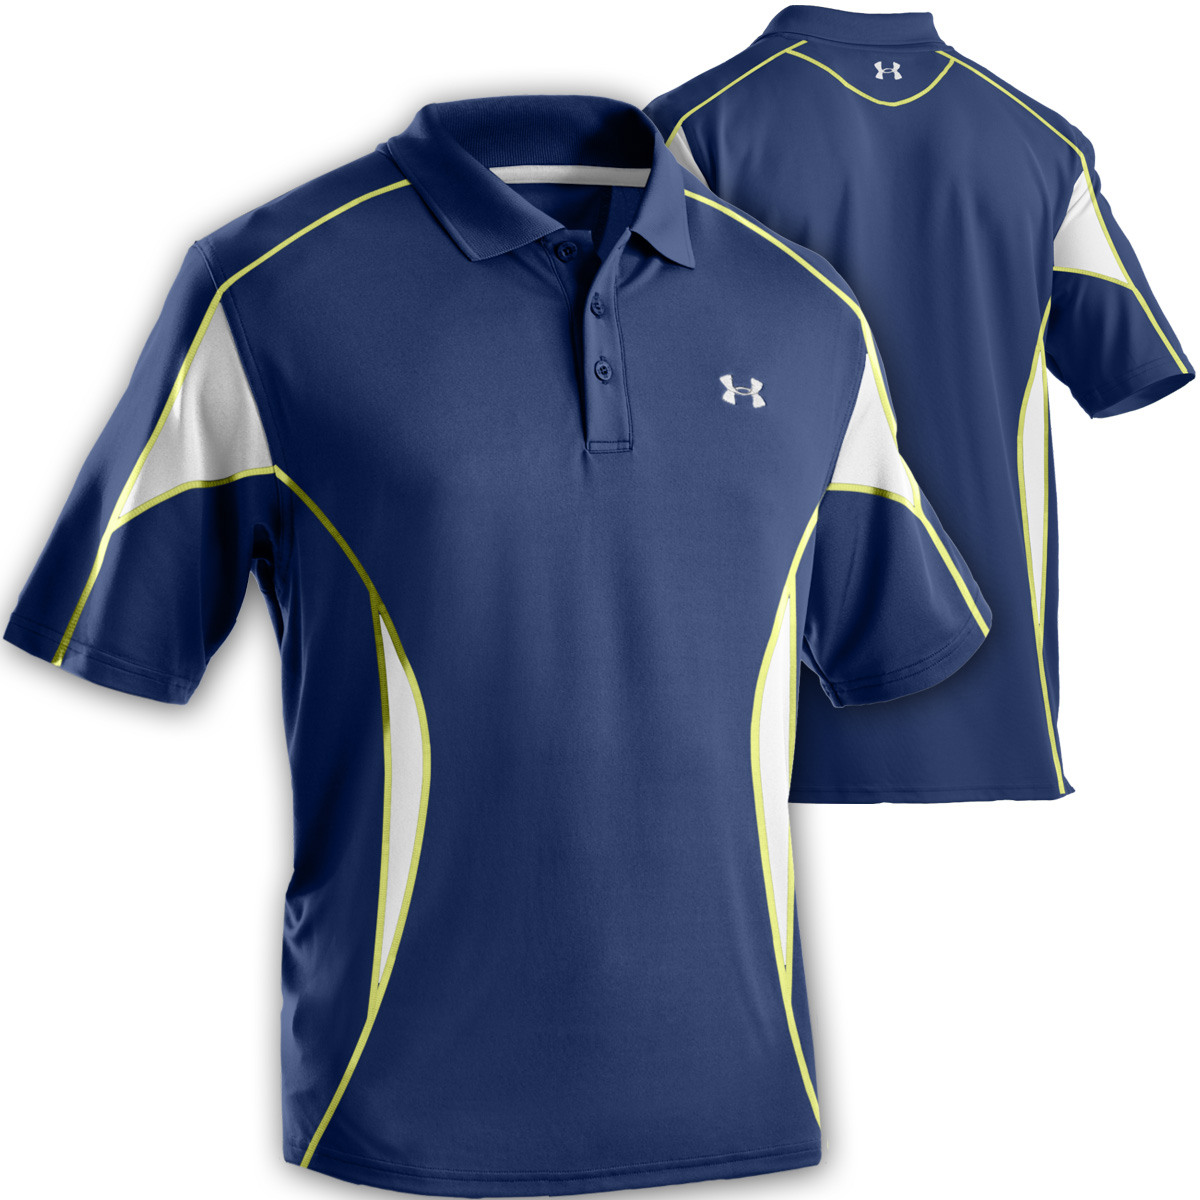 Under armour golf polo shirts sale for Under armour men s shirts clearance